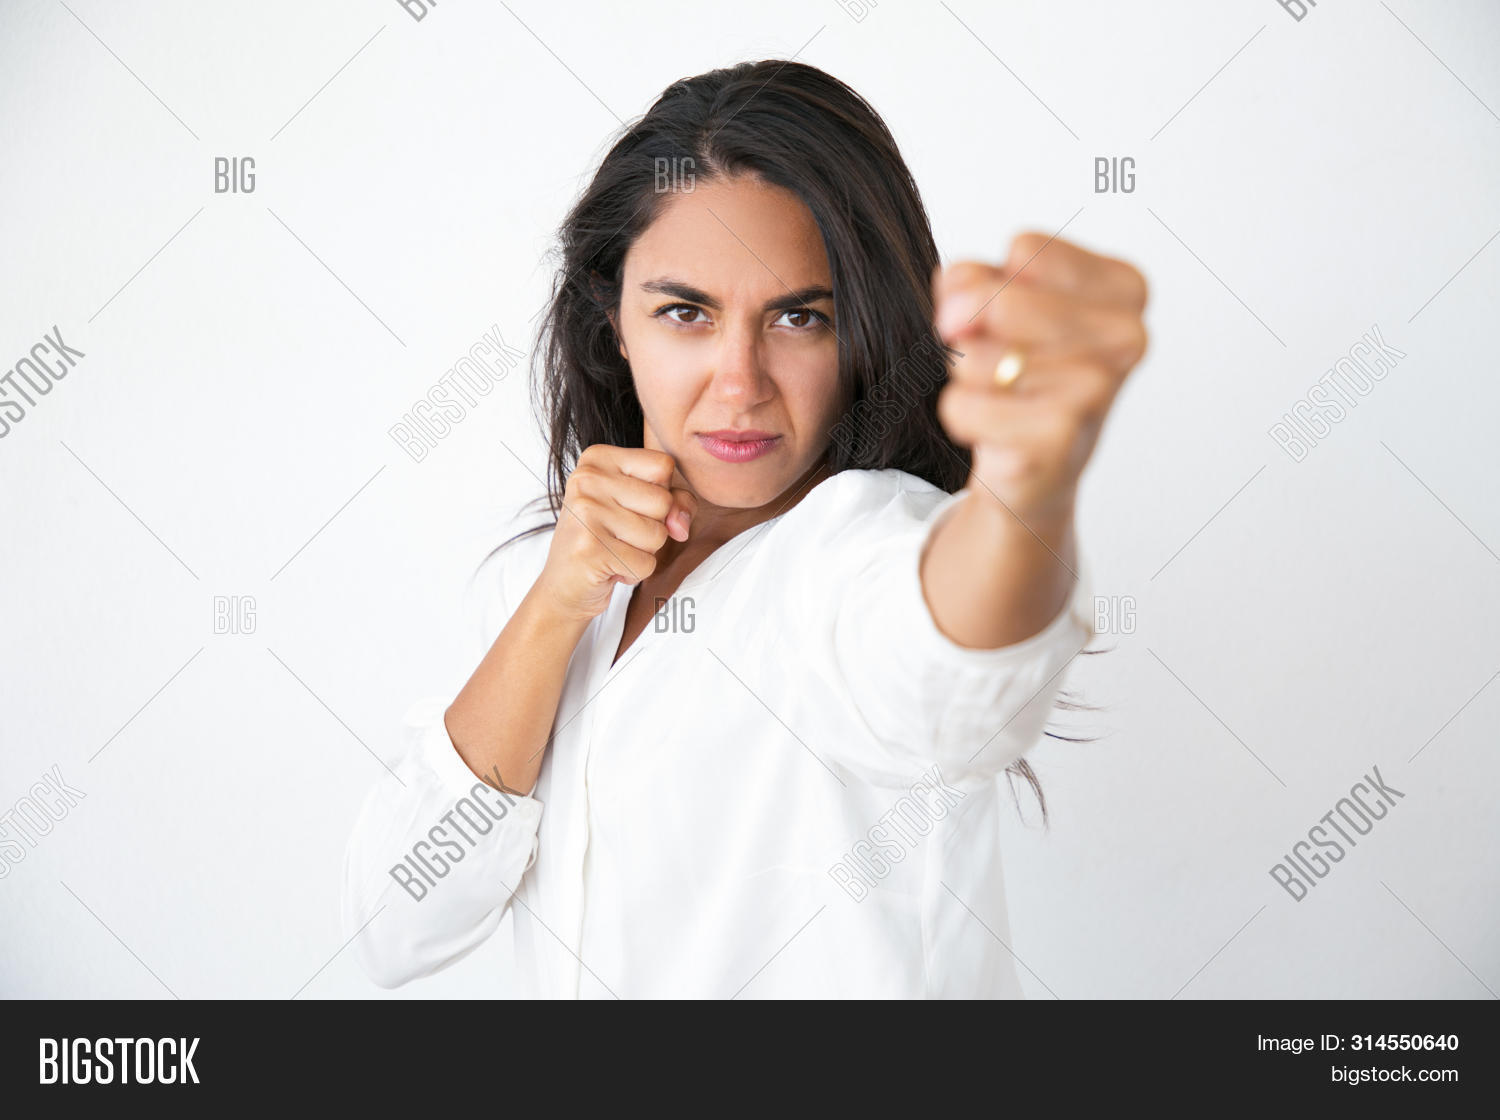 Caucasian,Latin,adult,aggressive,angry,attack,background,beating,black,boxing,business,businesswoman,casual,concept,conflict,customer,determined,emotion,emotional,expression,face,female,fight,fist,force,gesture,hair,hand,hitting,isolated,lady,mad,people,portrait,power,professional,punch,severe,shirt,strict,strong,studio,violence,white,woman,worker,wrist,young